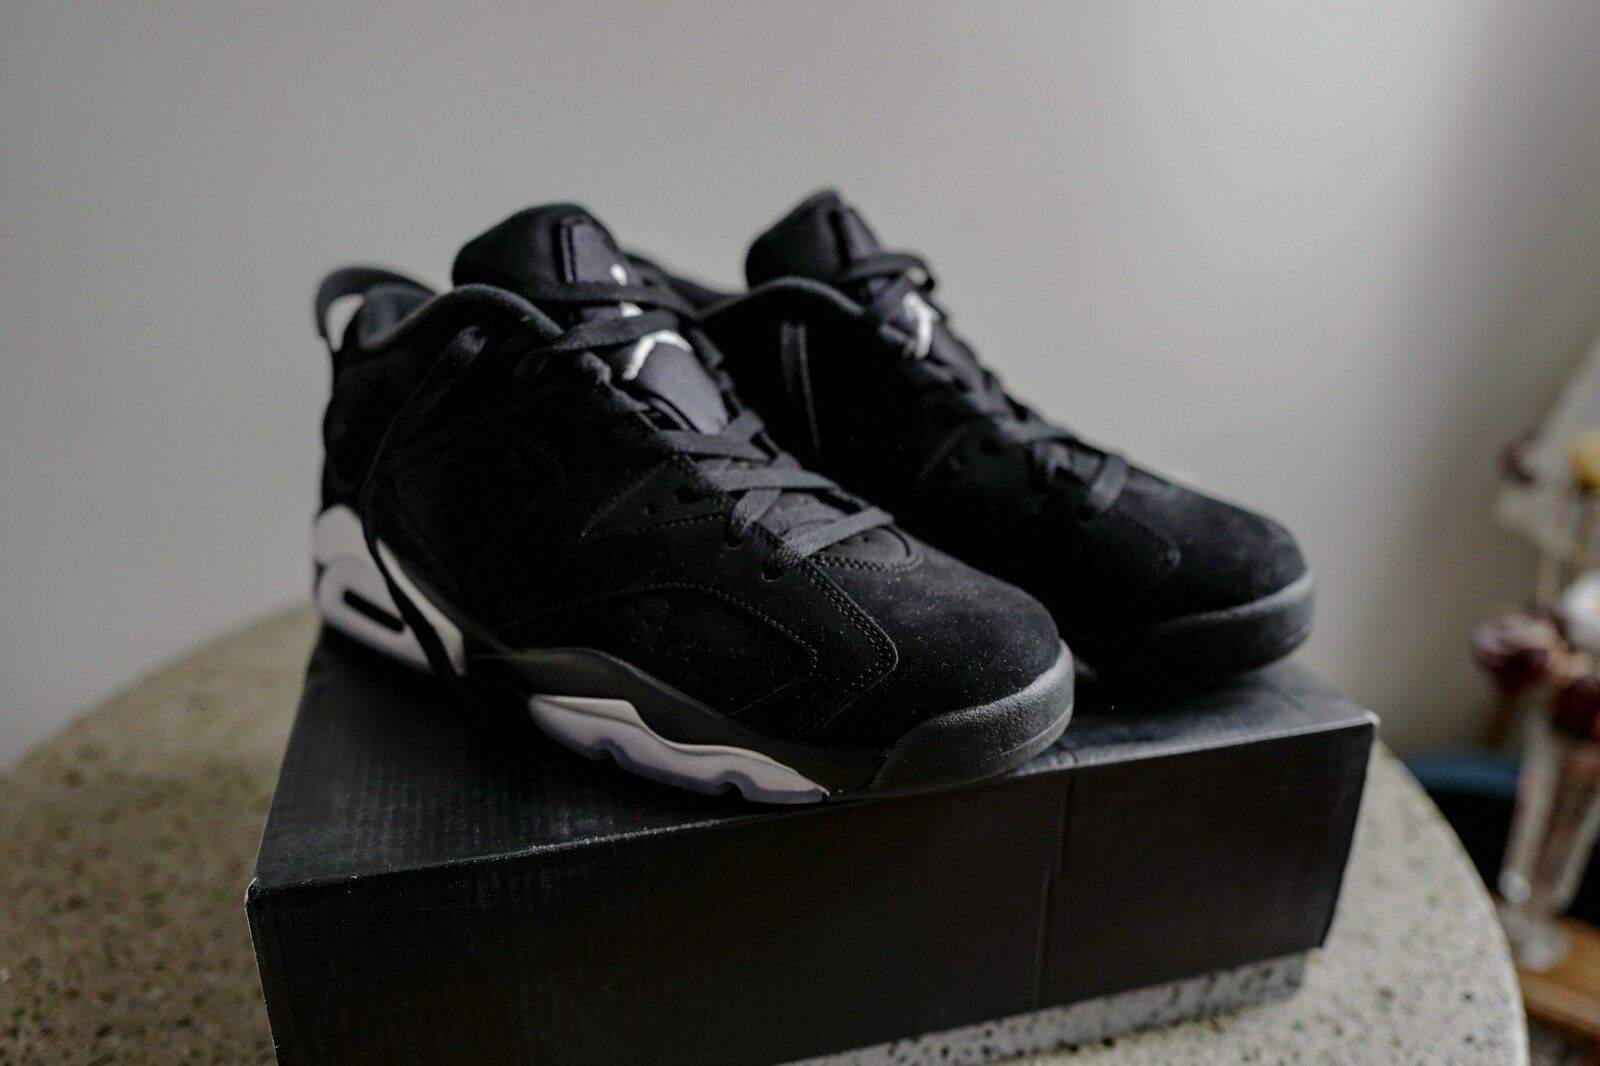 Nike Air Jordan 6 Retro Low Black Chrome Metallic Silver 304401-003 Comfortable Comfortable and good-looking